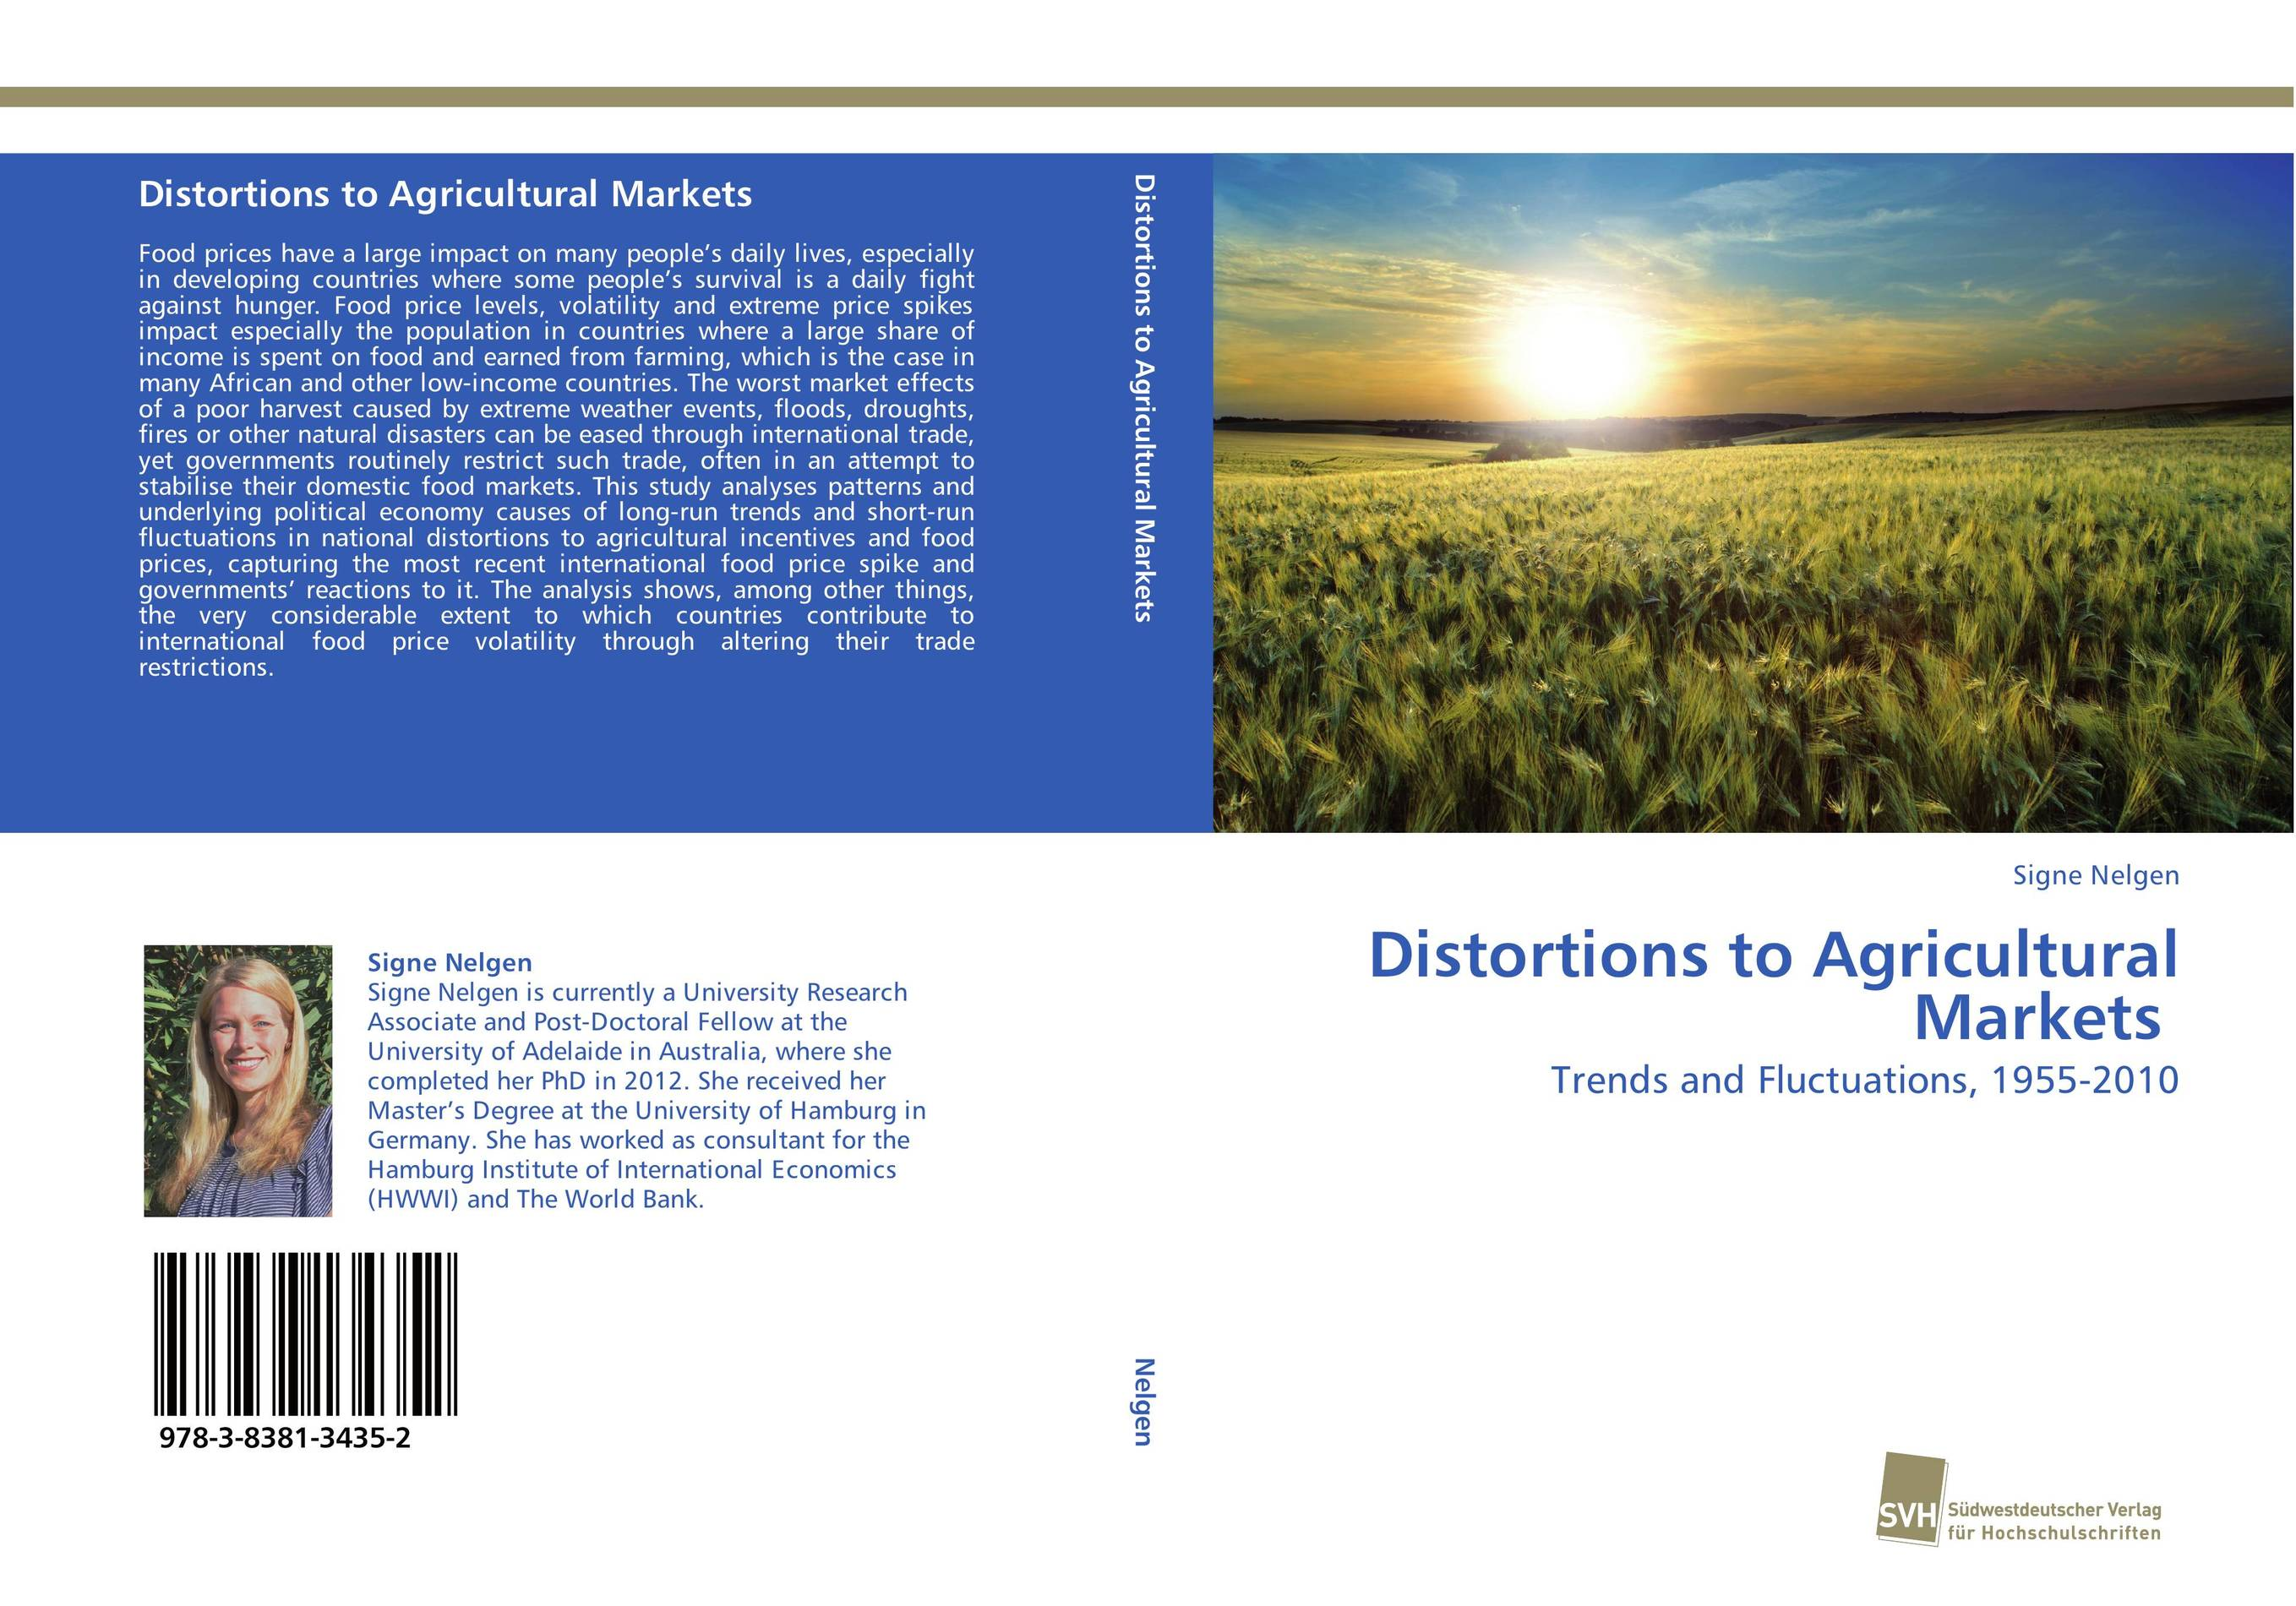 Distortions to Agricultural Markets john beeson the unwritten rules the six skills you need to get promoted to the executive level